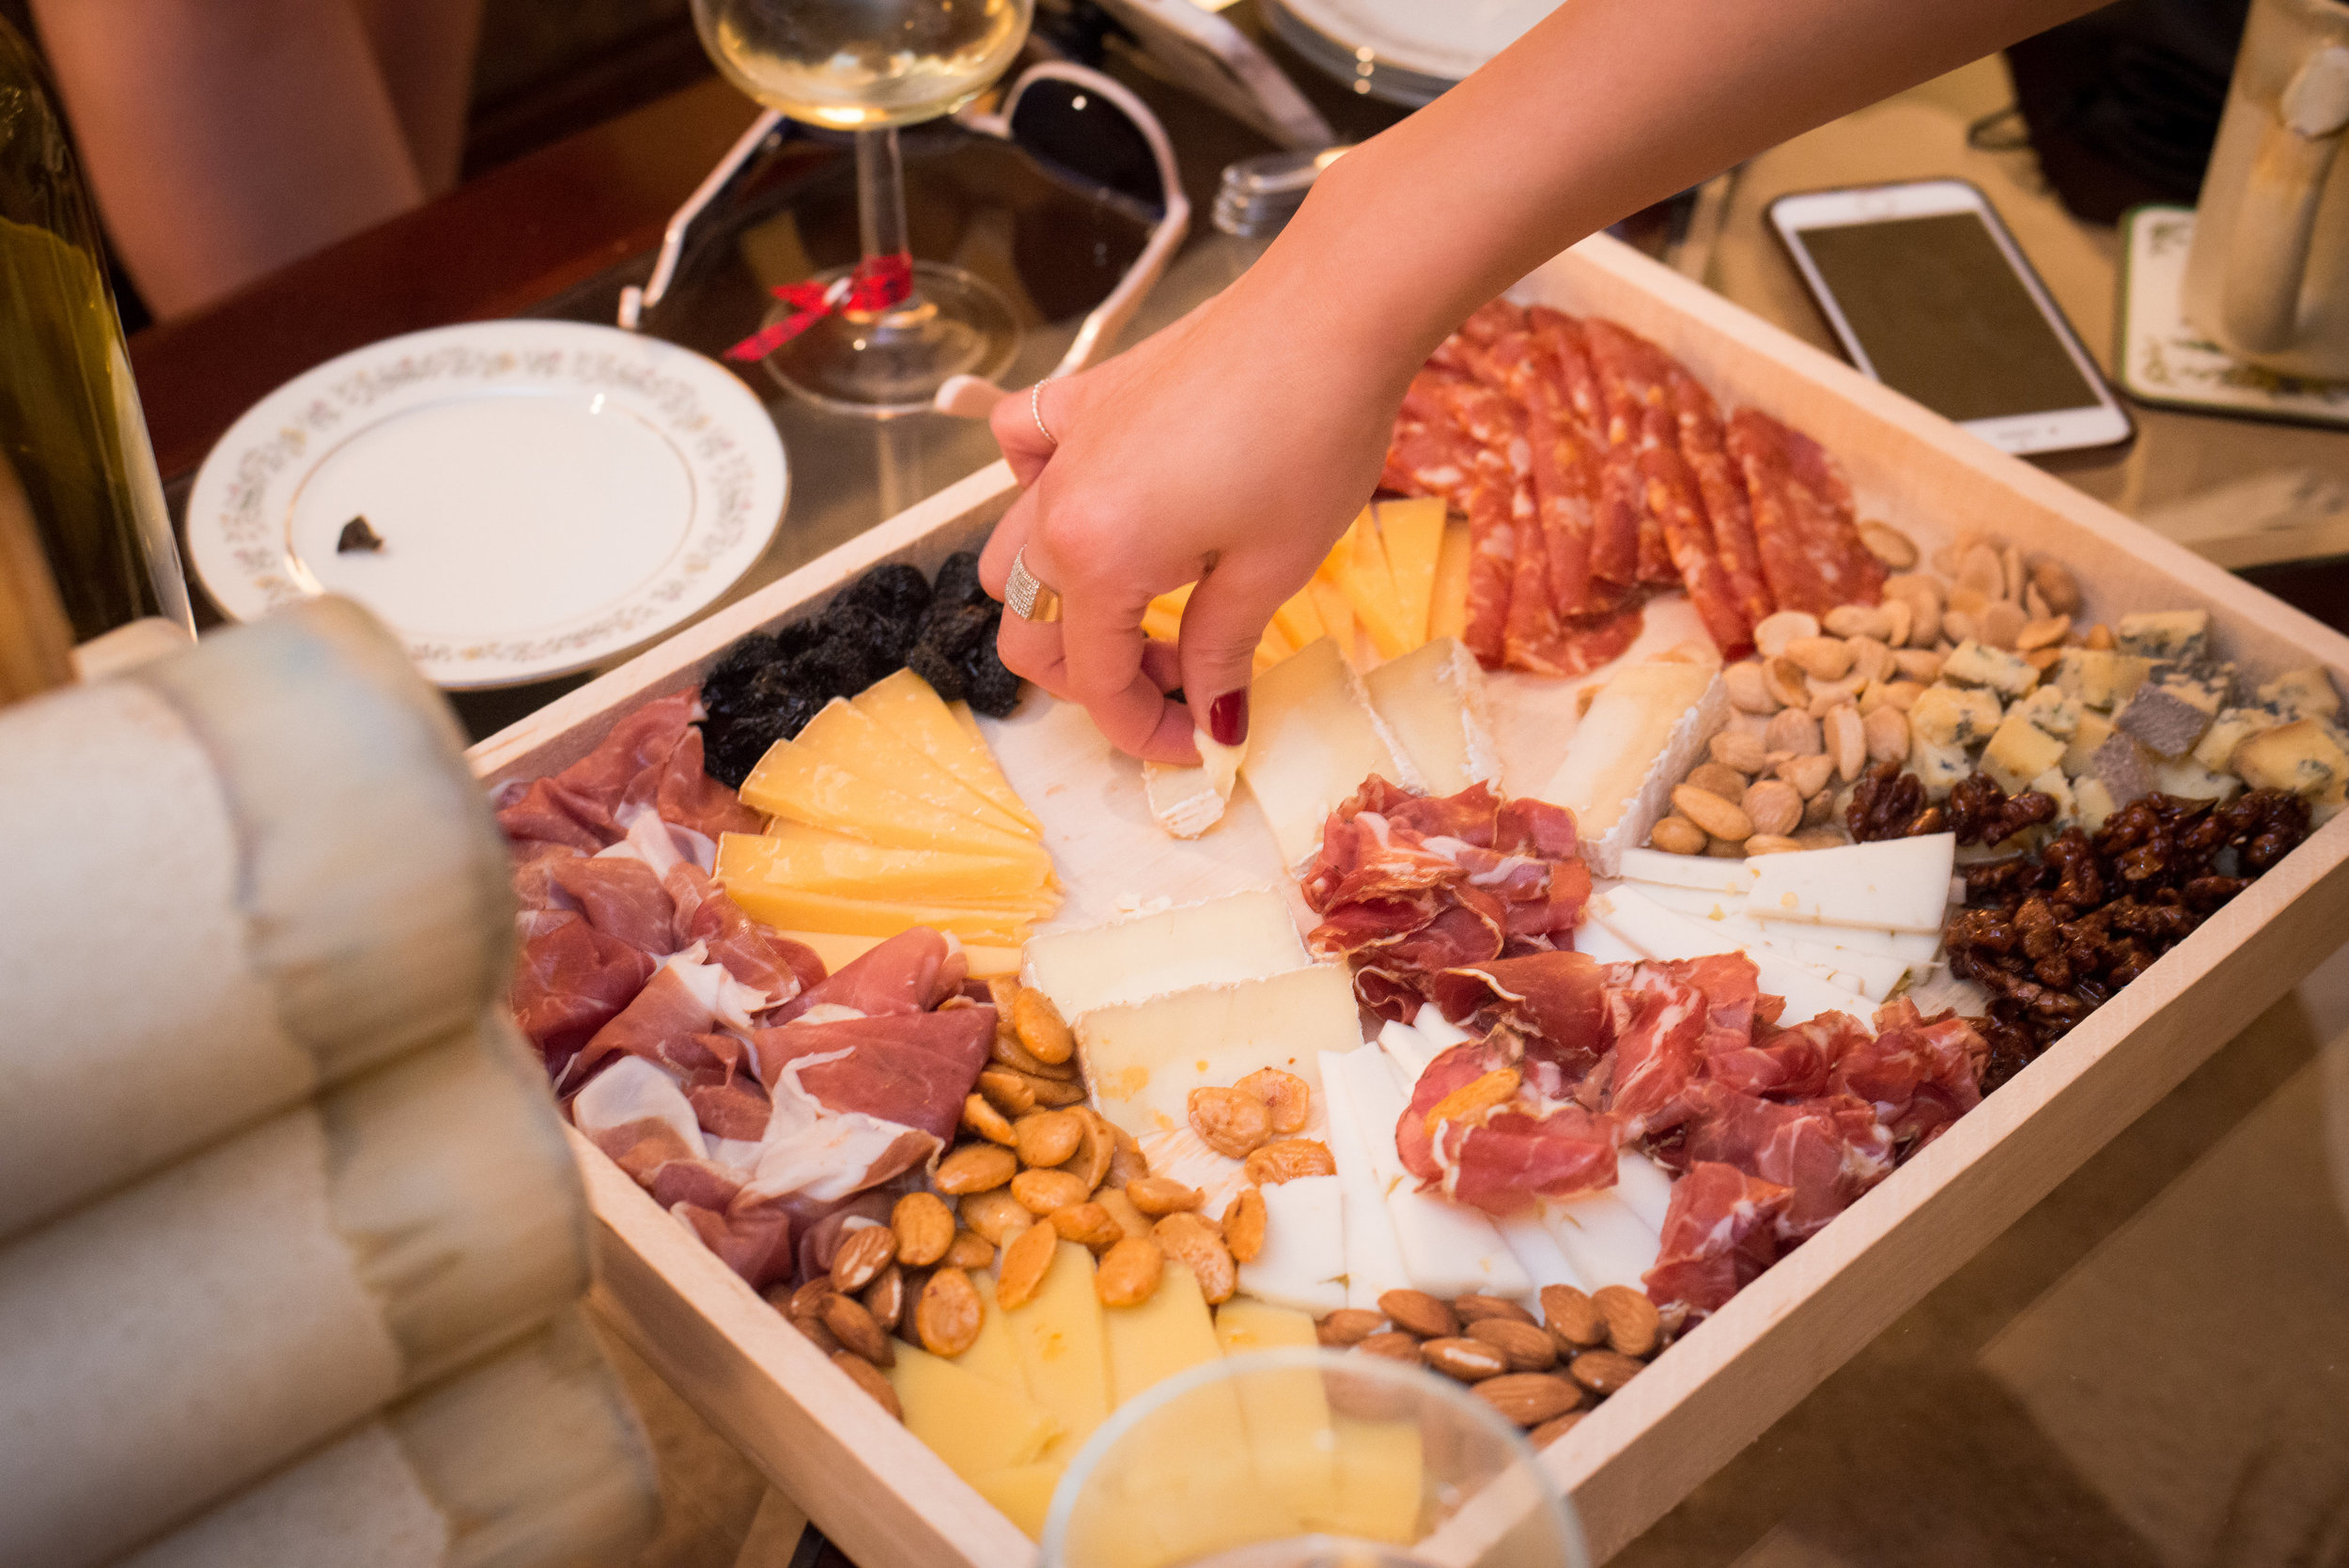 cheese-and-provisions-denver.jpg